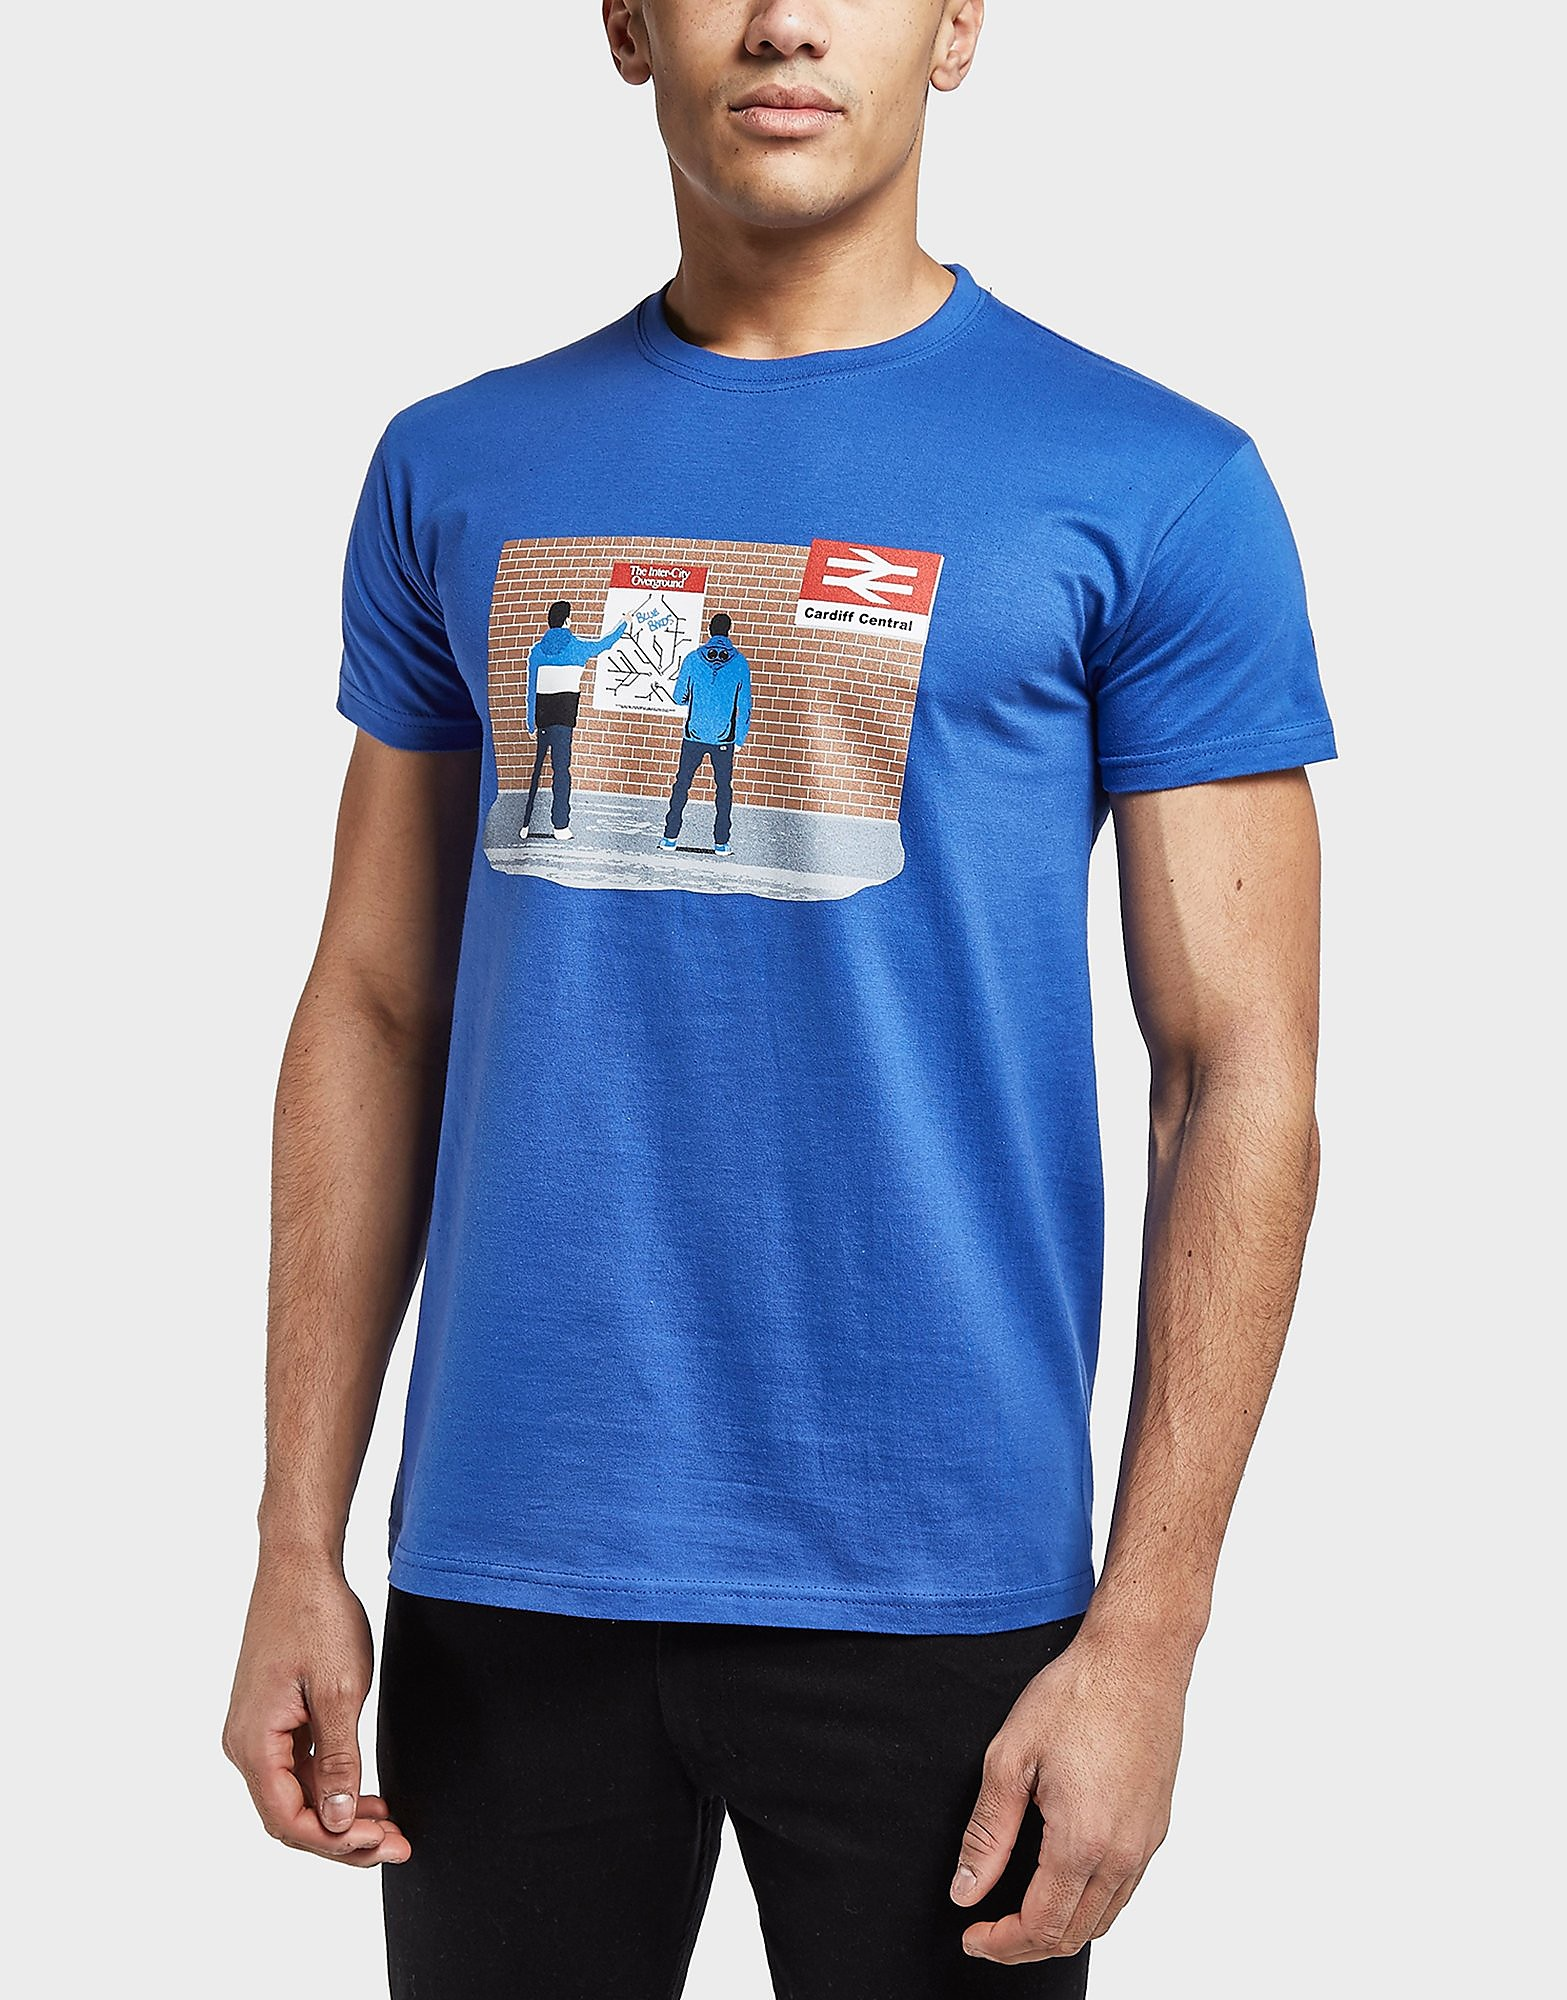 80s Casuals Bluebirds Station Short Sleeve T-Shirt - Exclusive